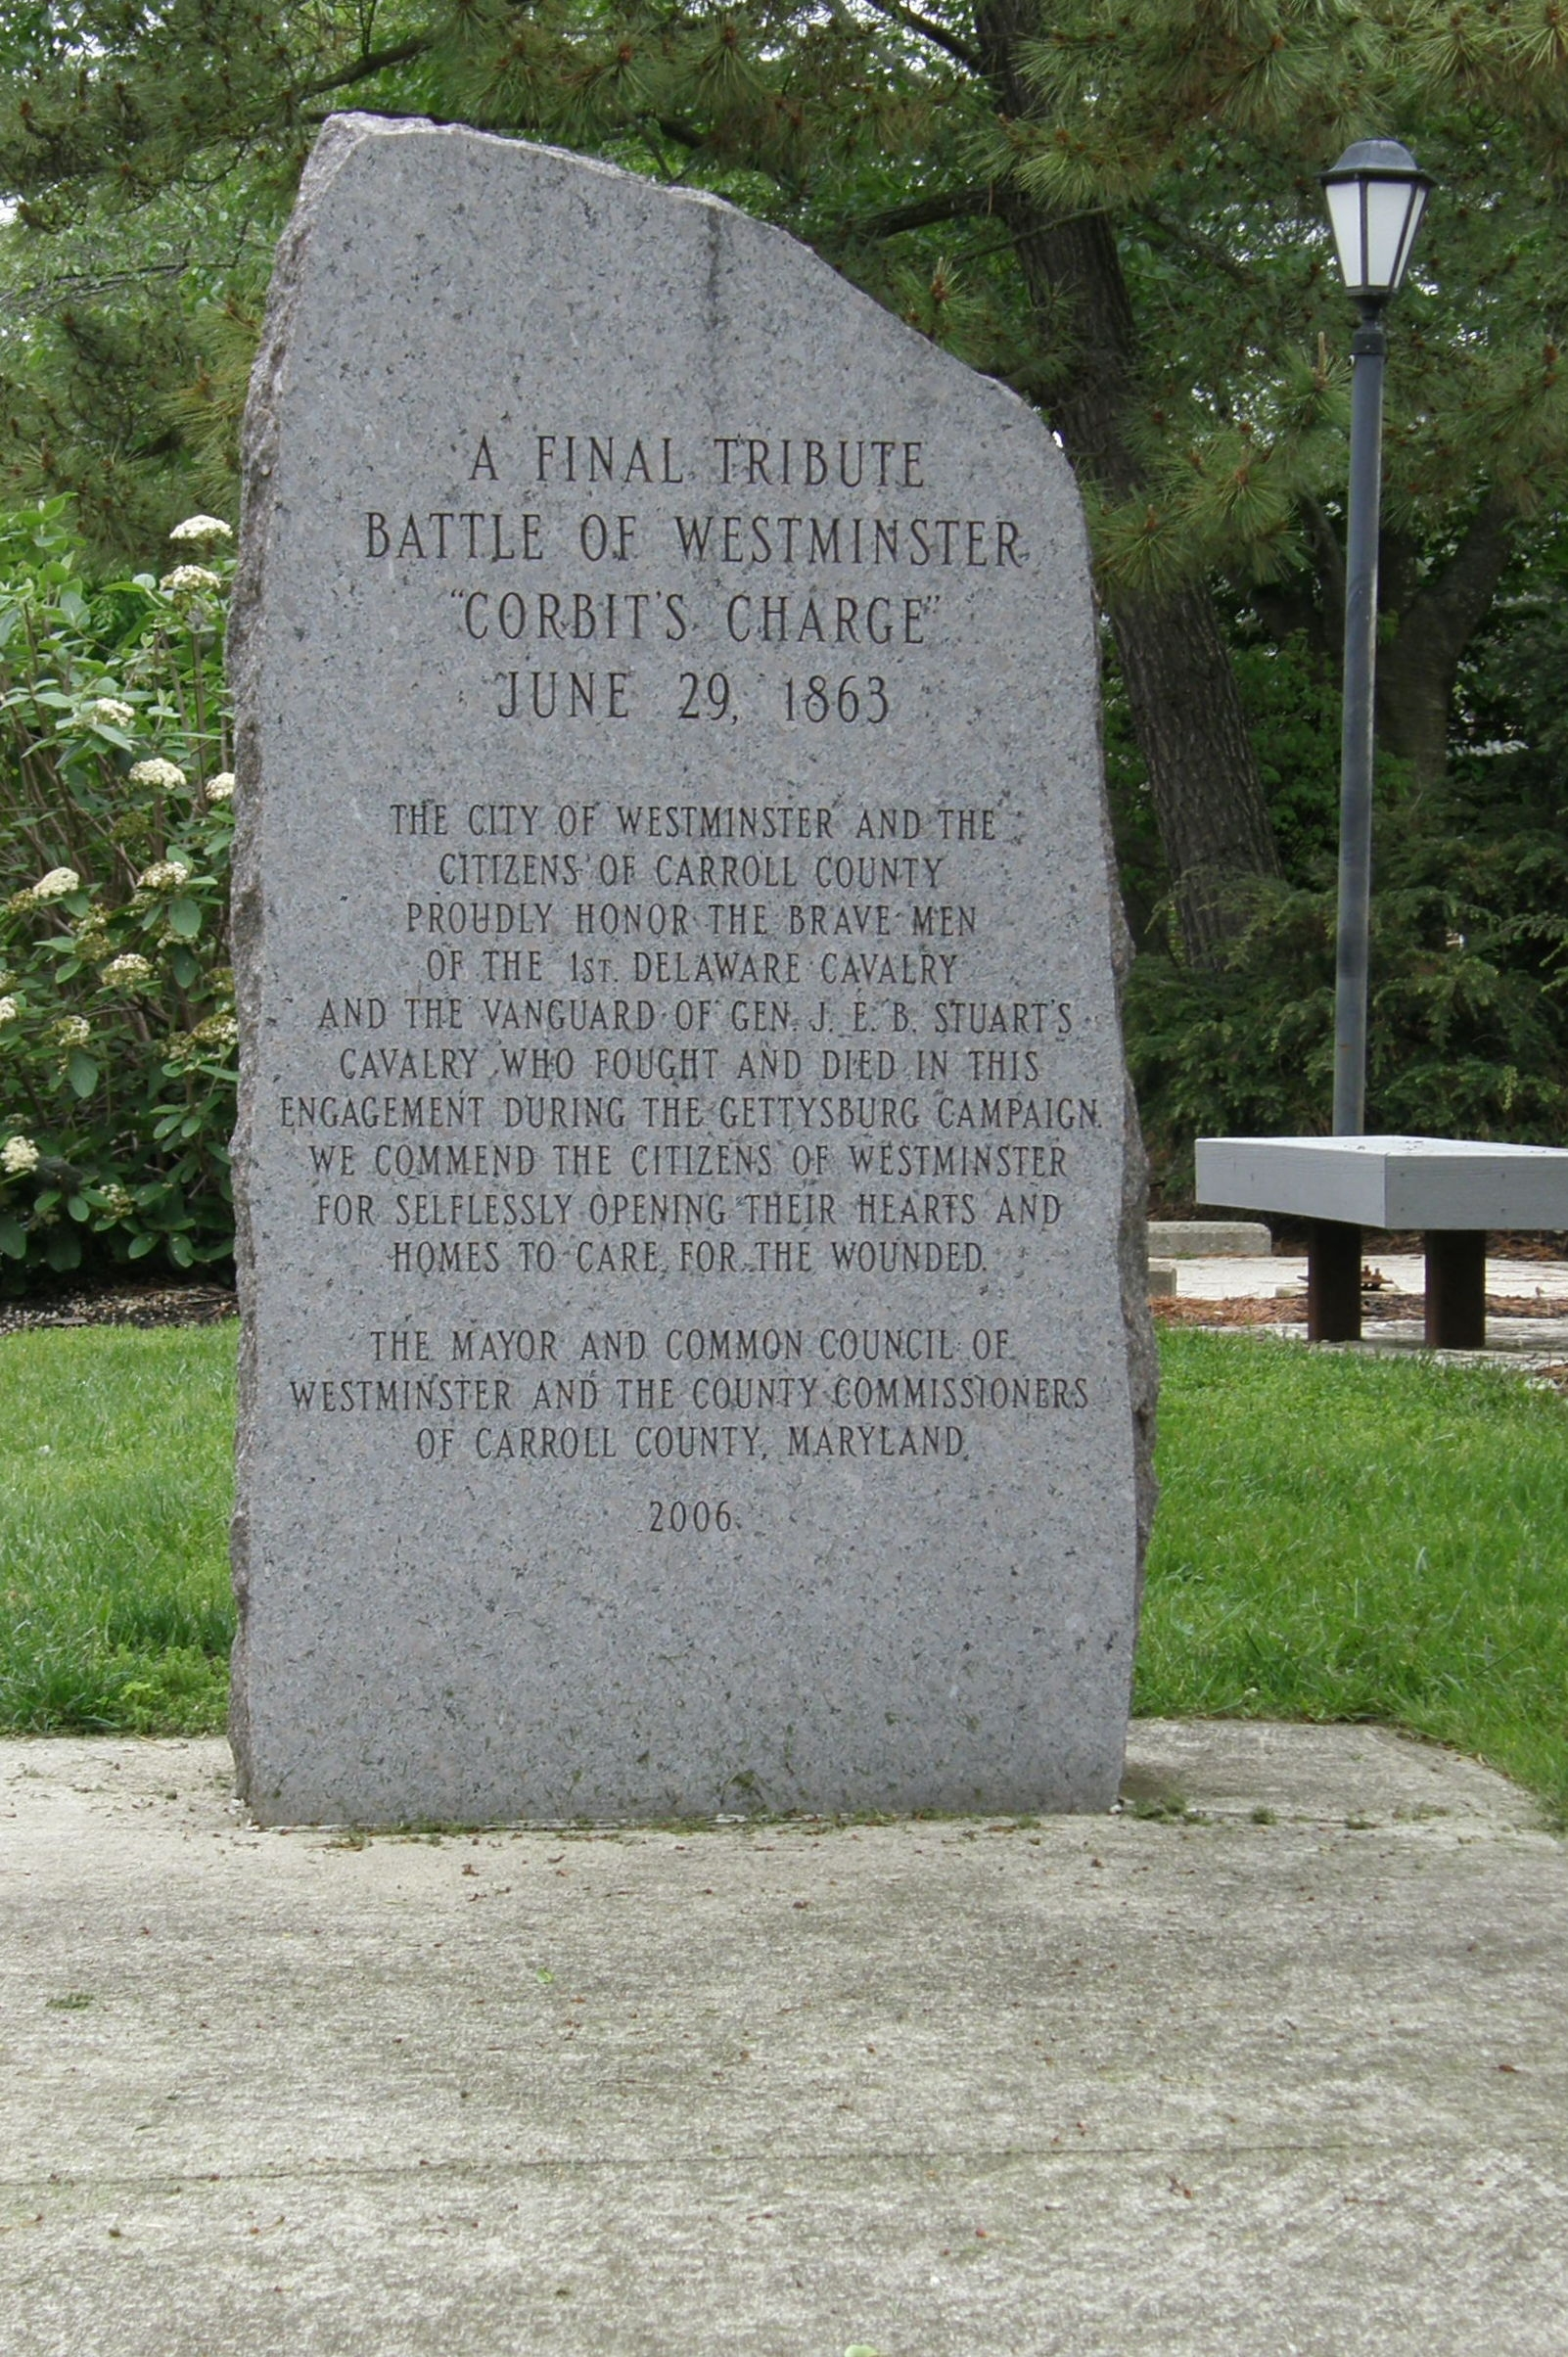 A Final Tribute Marker